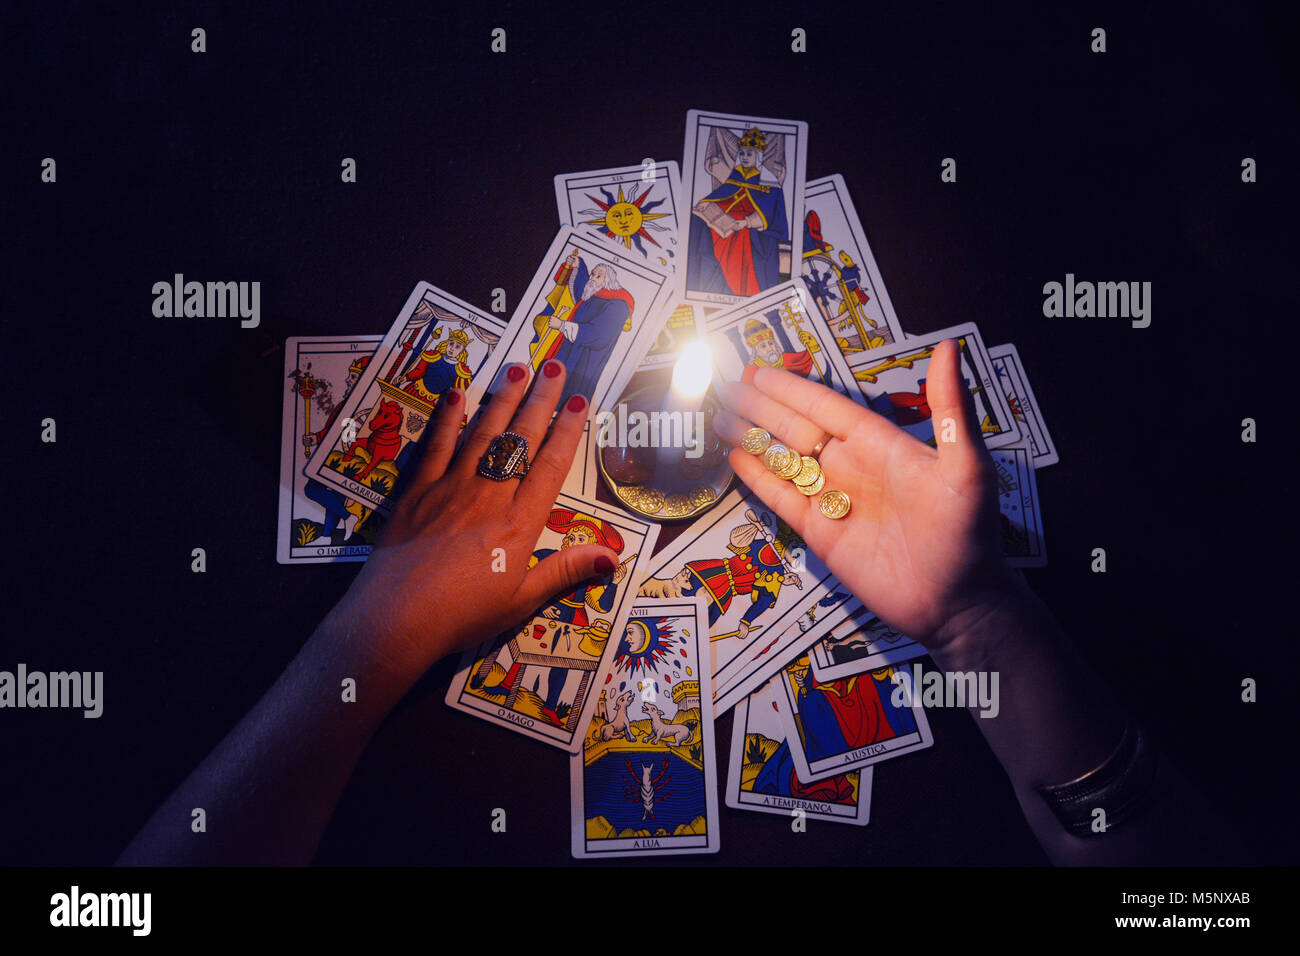 Tarot Cards and candle on table - Stock Image